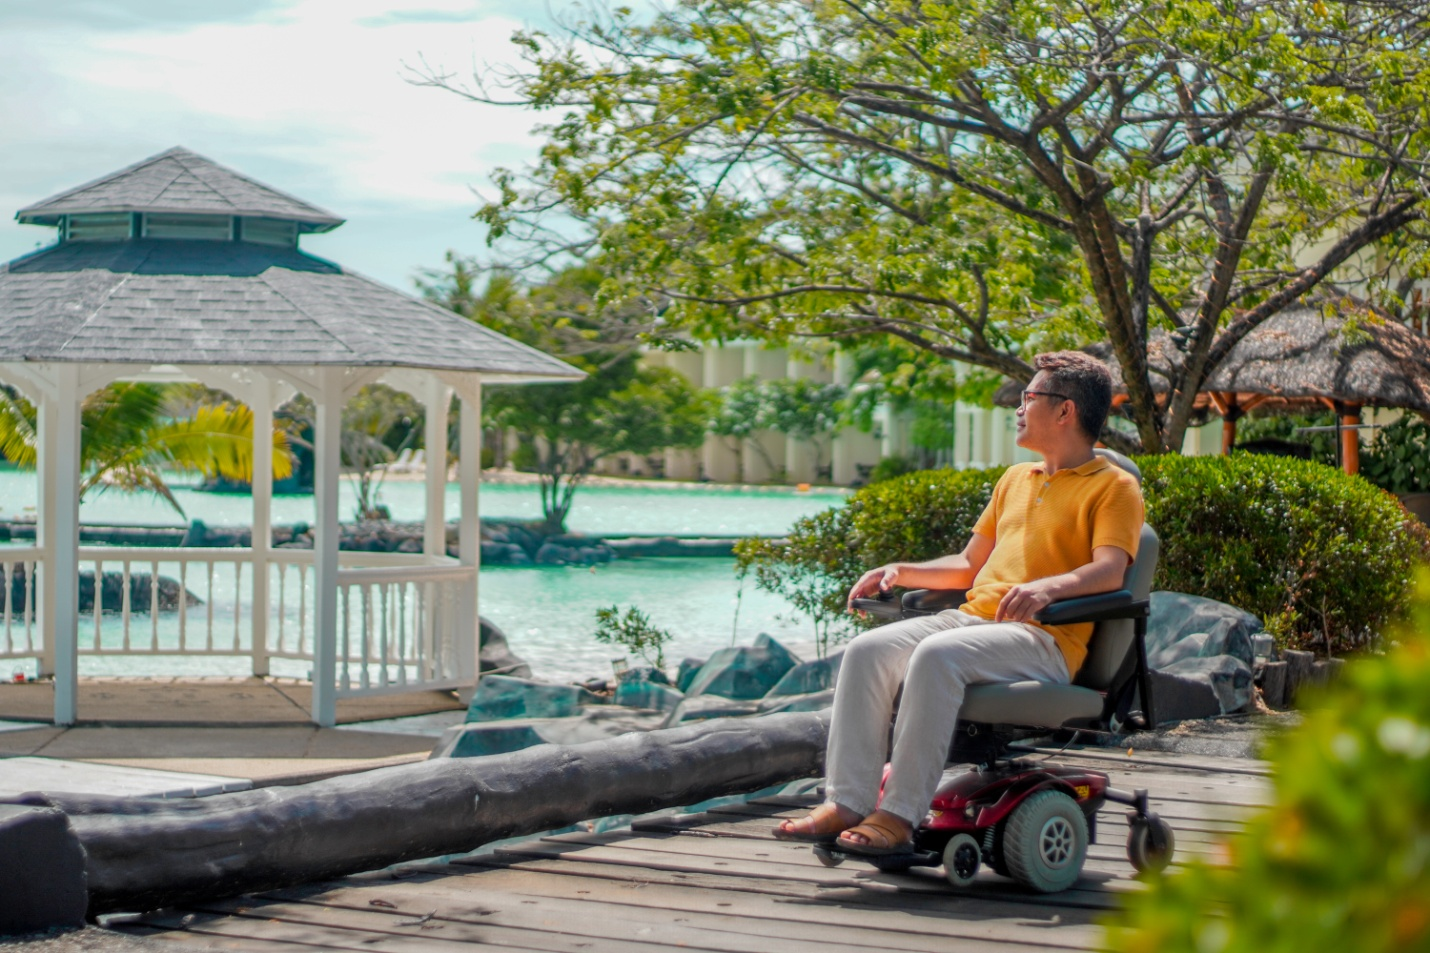 C:\Users\GCPI-ROBBY\Desktop\PLANTATION BAY PR\Power Chair.jpg